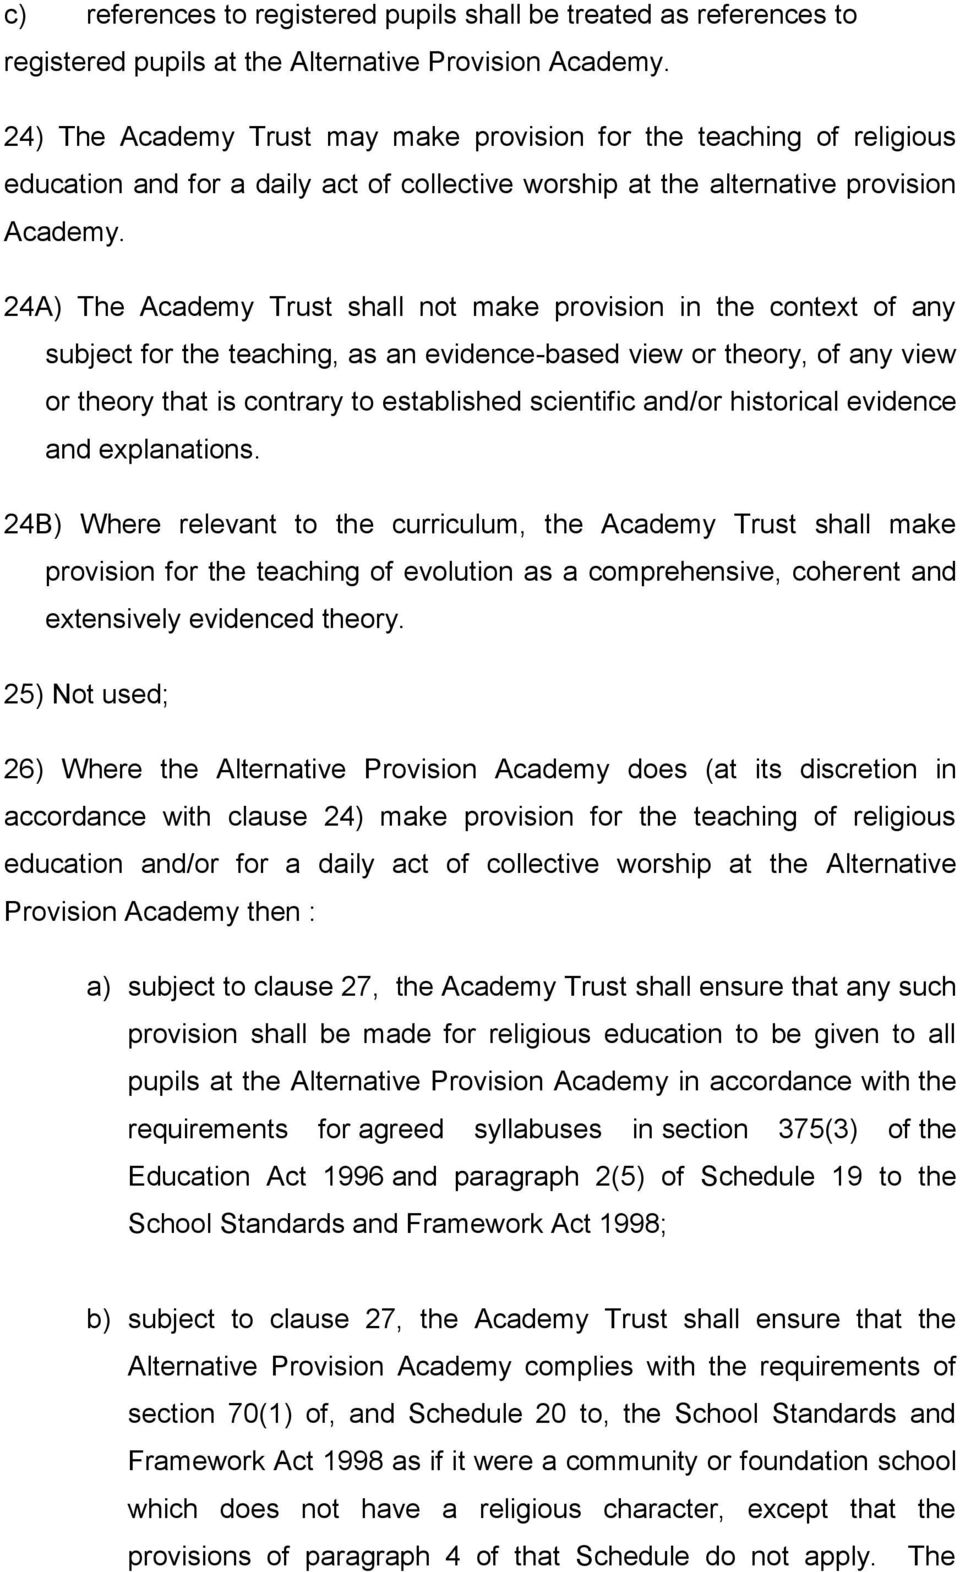 24A) The Academy Trust shall not make provision in the context of any subject for the teaching, as an evidence-based view or theory, of any view or theory that is contrary to established scientific